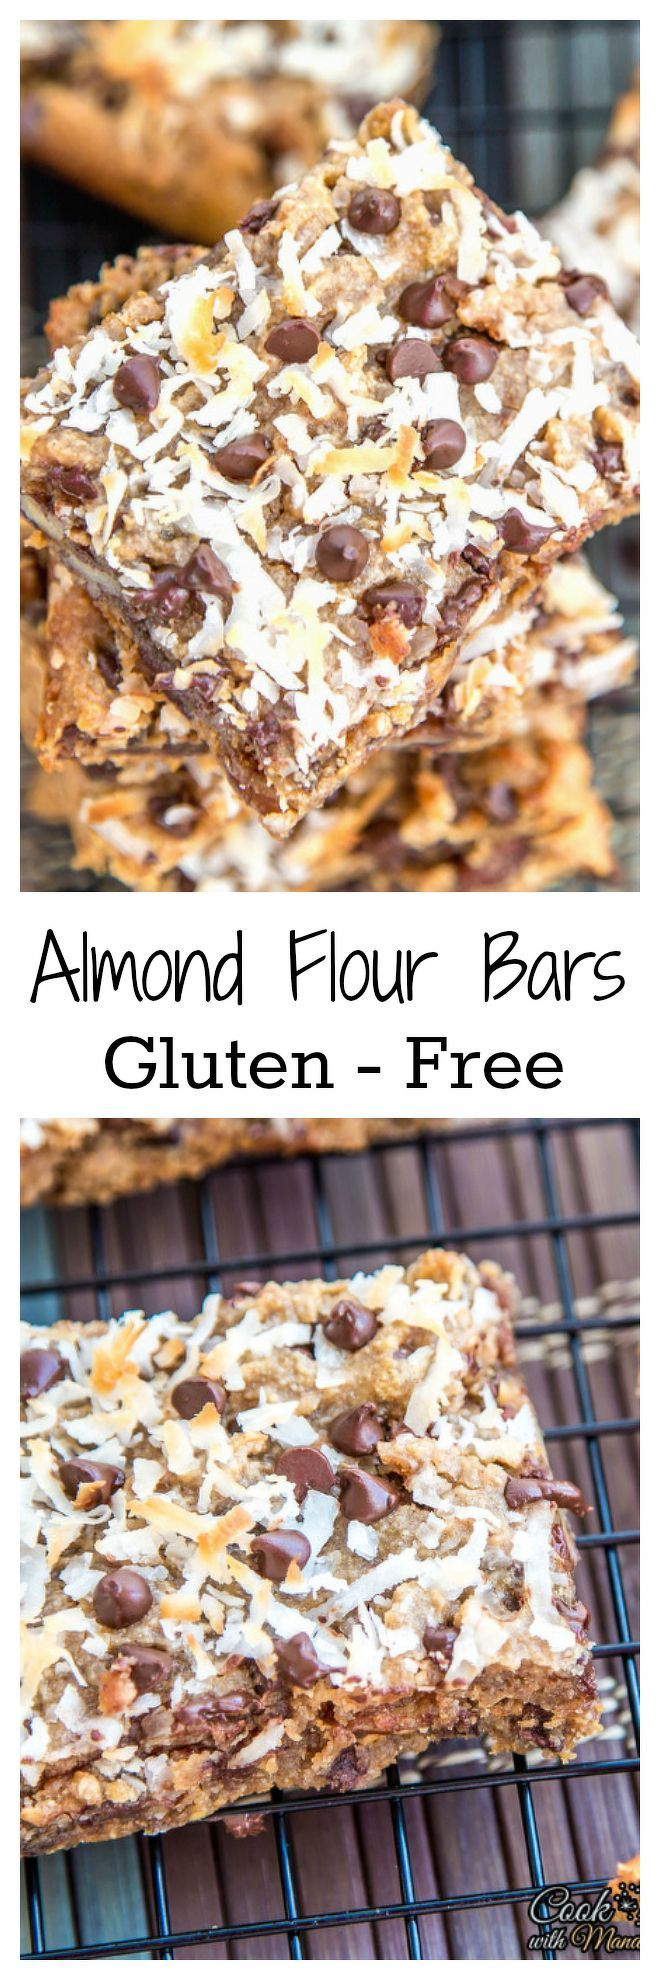 Healthy gluten free almond flour bars made with almond meal, almond butter, flax seeds, honey and walnuts. Great post-workout snack! Find the recipe on www.cookwithmanal...